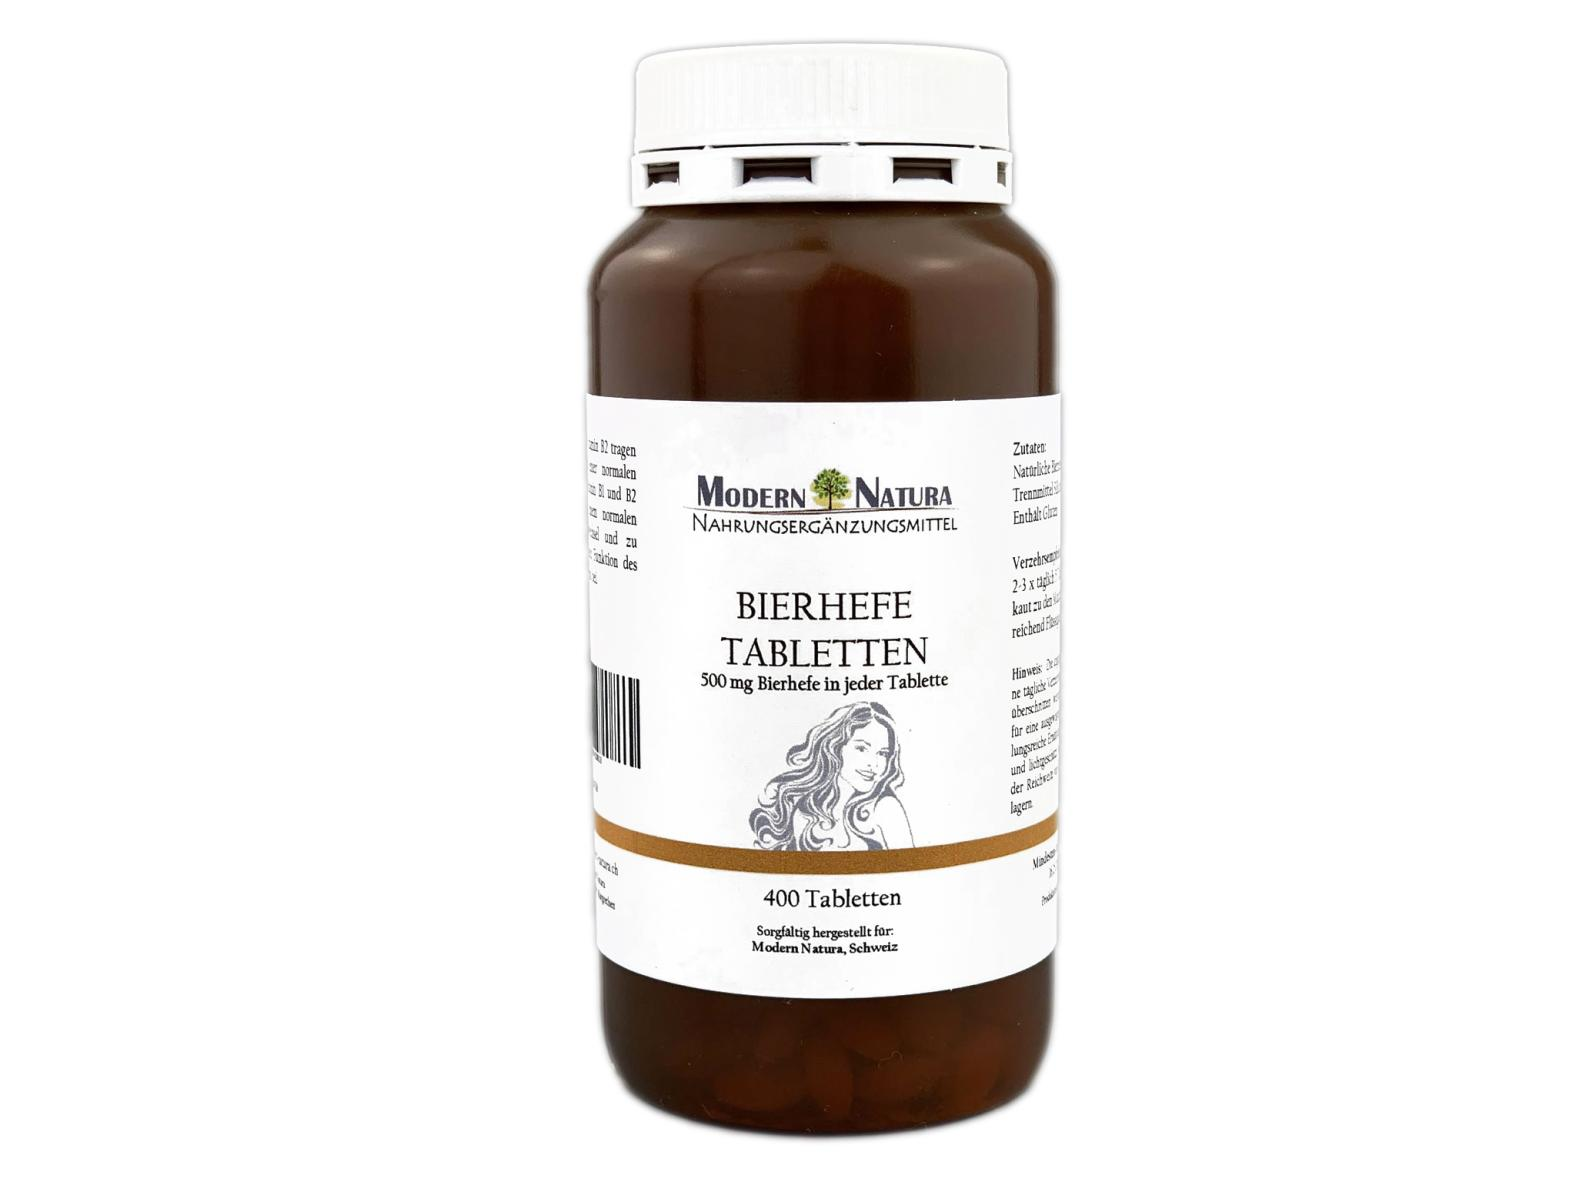 Bierhefe-Tabletten - 400 Stück - Mit 500 mg Bierhefe (Saccharomyces cerevisiae)